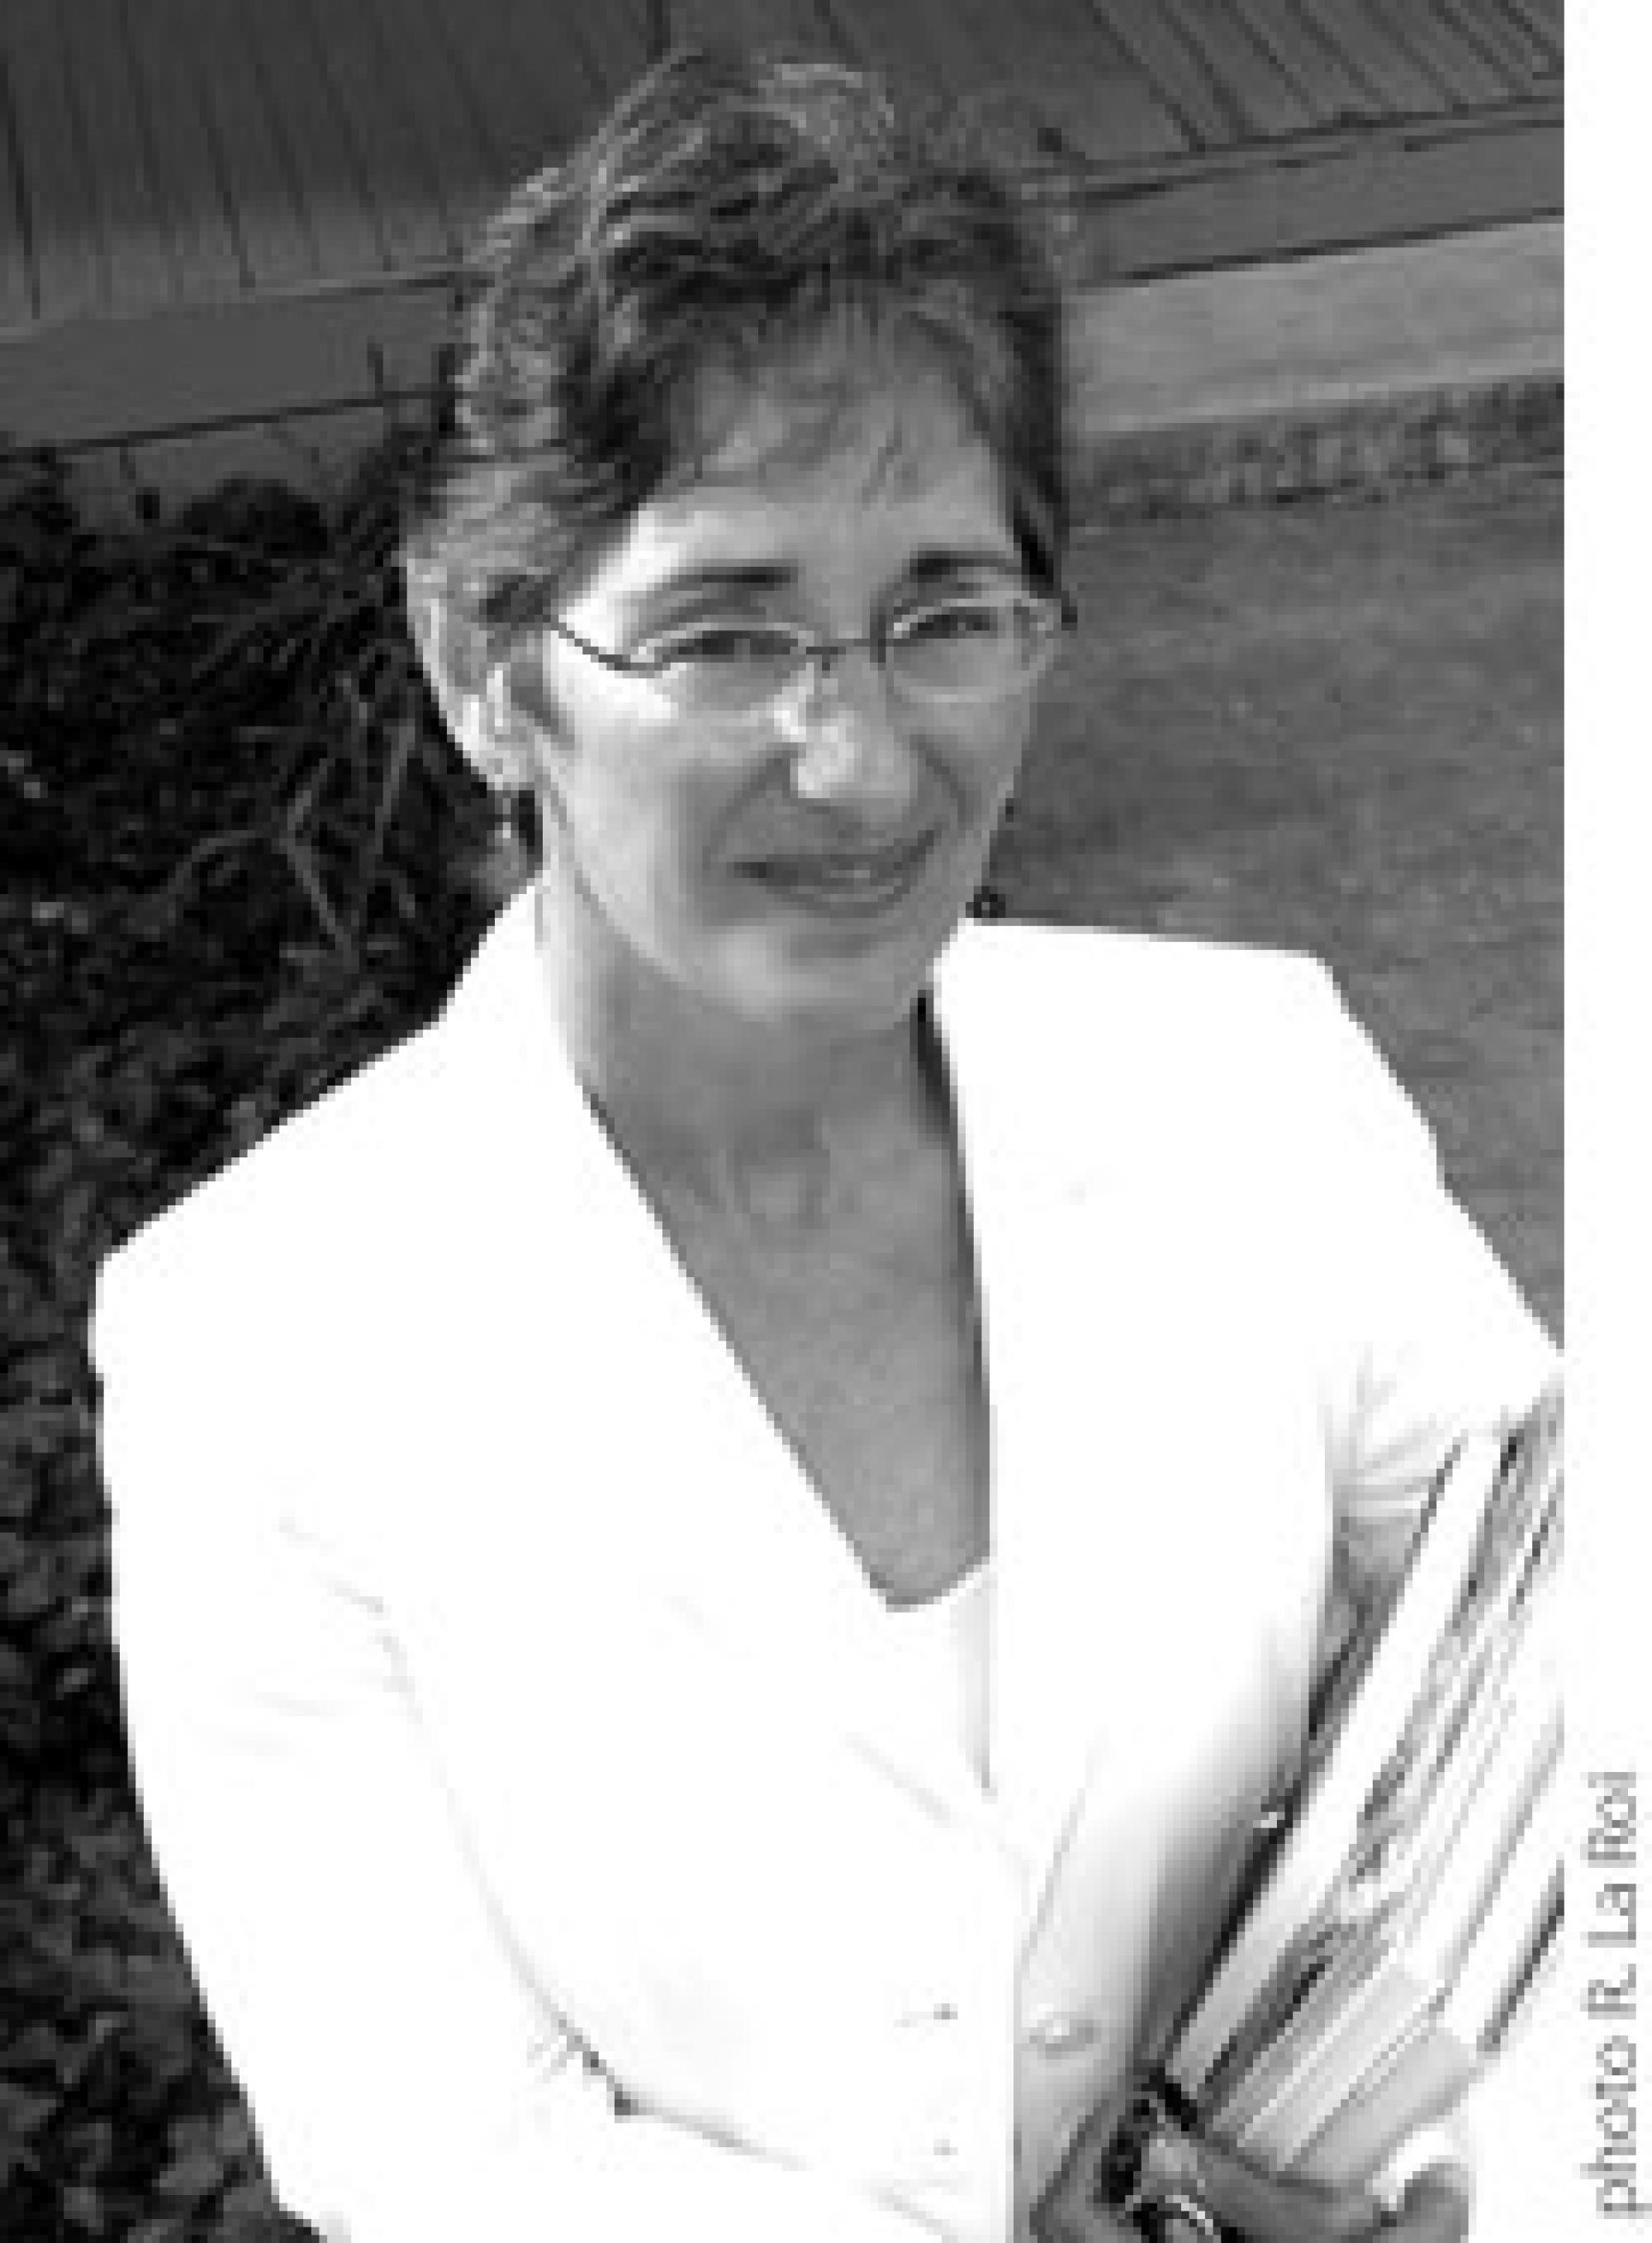 Judy Gans, program manager for Immigration Policy at the Udall Center for Studies in Public Policy